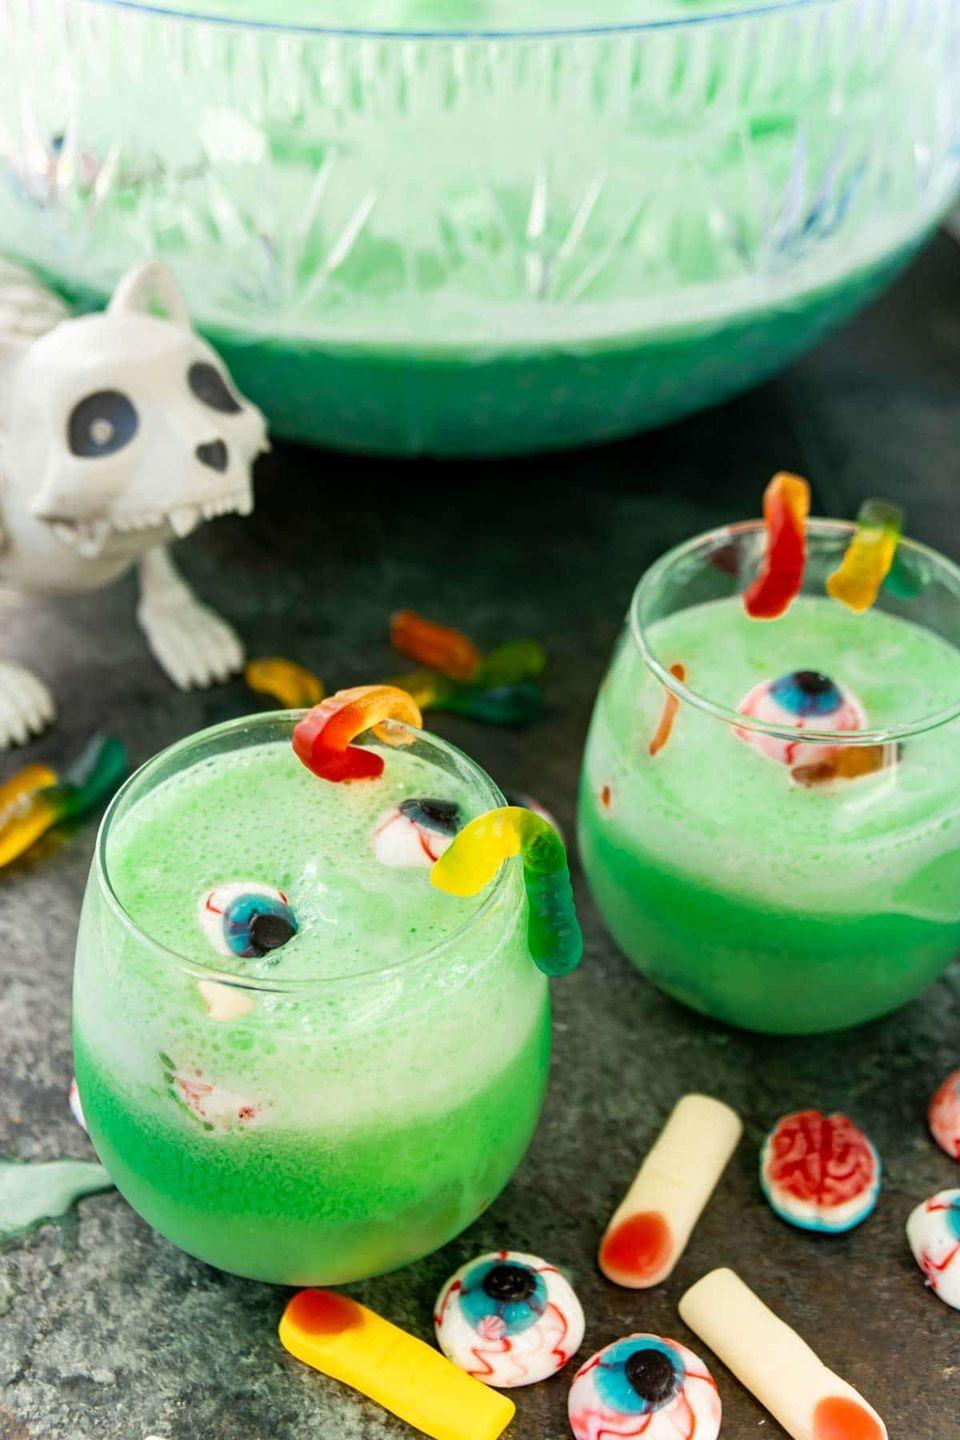 """<p> Combine 2 liters of lemon-lime soda and 64 oz. of lemonade in a large punch bowl. Then, add 1/2 cup of blue raspberry Kool-Aid powder and mix until combined. Add 1 3/4 quart of lime sherbert (don't mix in). Garnish with gummy worms, brains, and body parts for the full spooky effect. </p><p><em>Recipe from <a href=""""https://www.playpartyplan.com/halloween-punch/"""" rel=""""nofollow noopener"""" target=""""_blank"""" data-ylk=""""slk:Play Party Plan."""" class=""""link rapid-noclick-resp"""">Play Party Plan. </a></em></p>"""